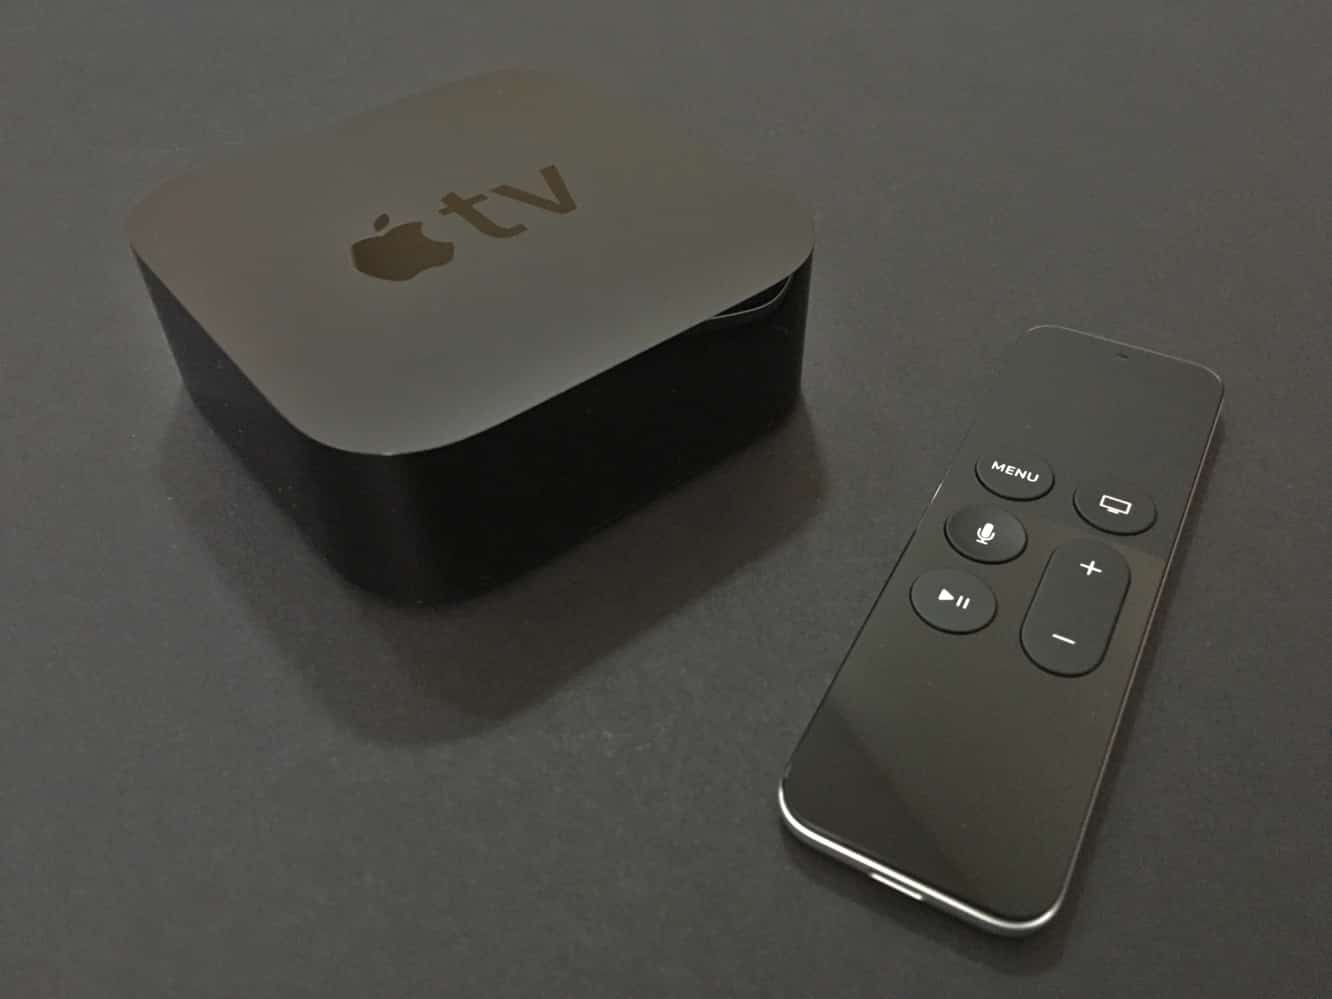 New Apple TV trademark filing may indicate stronger gaming focus